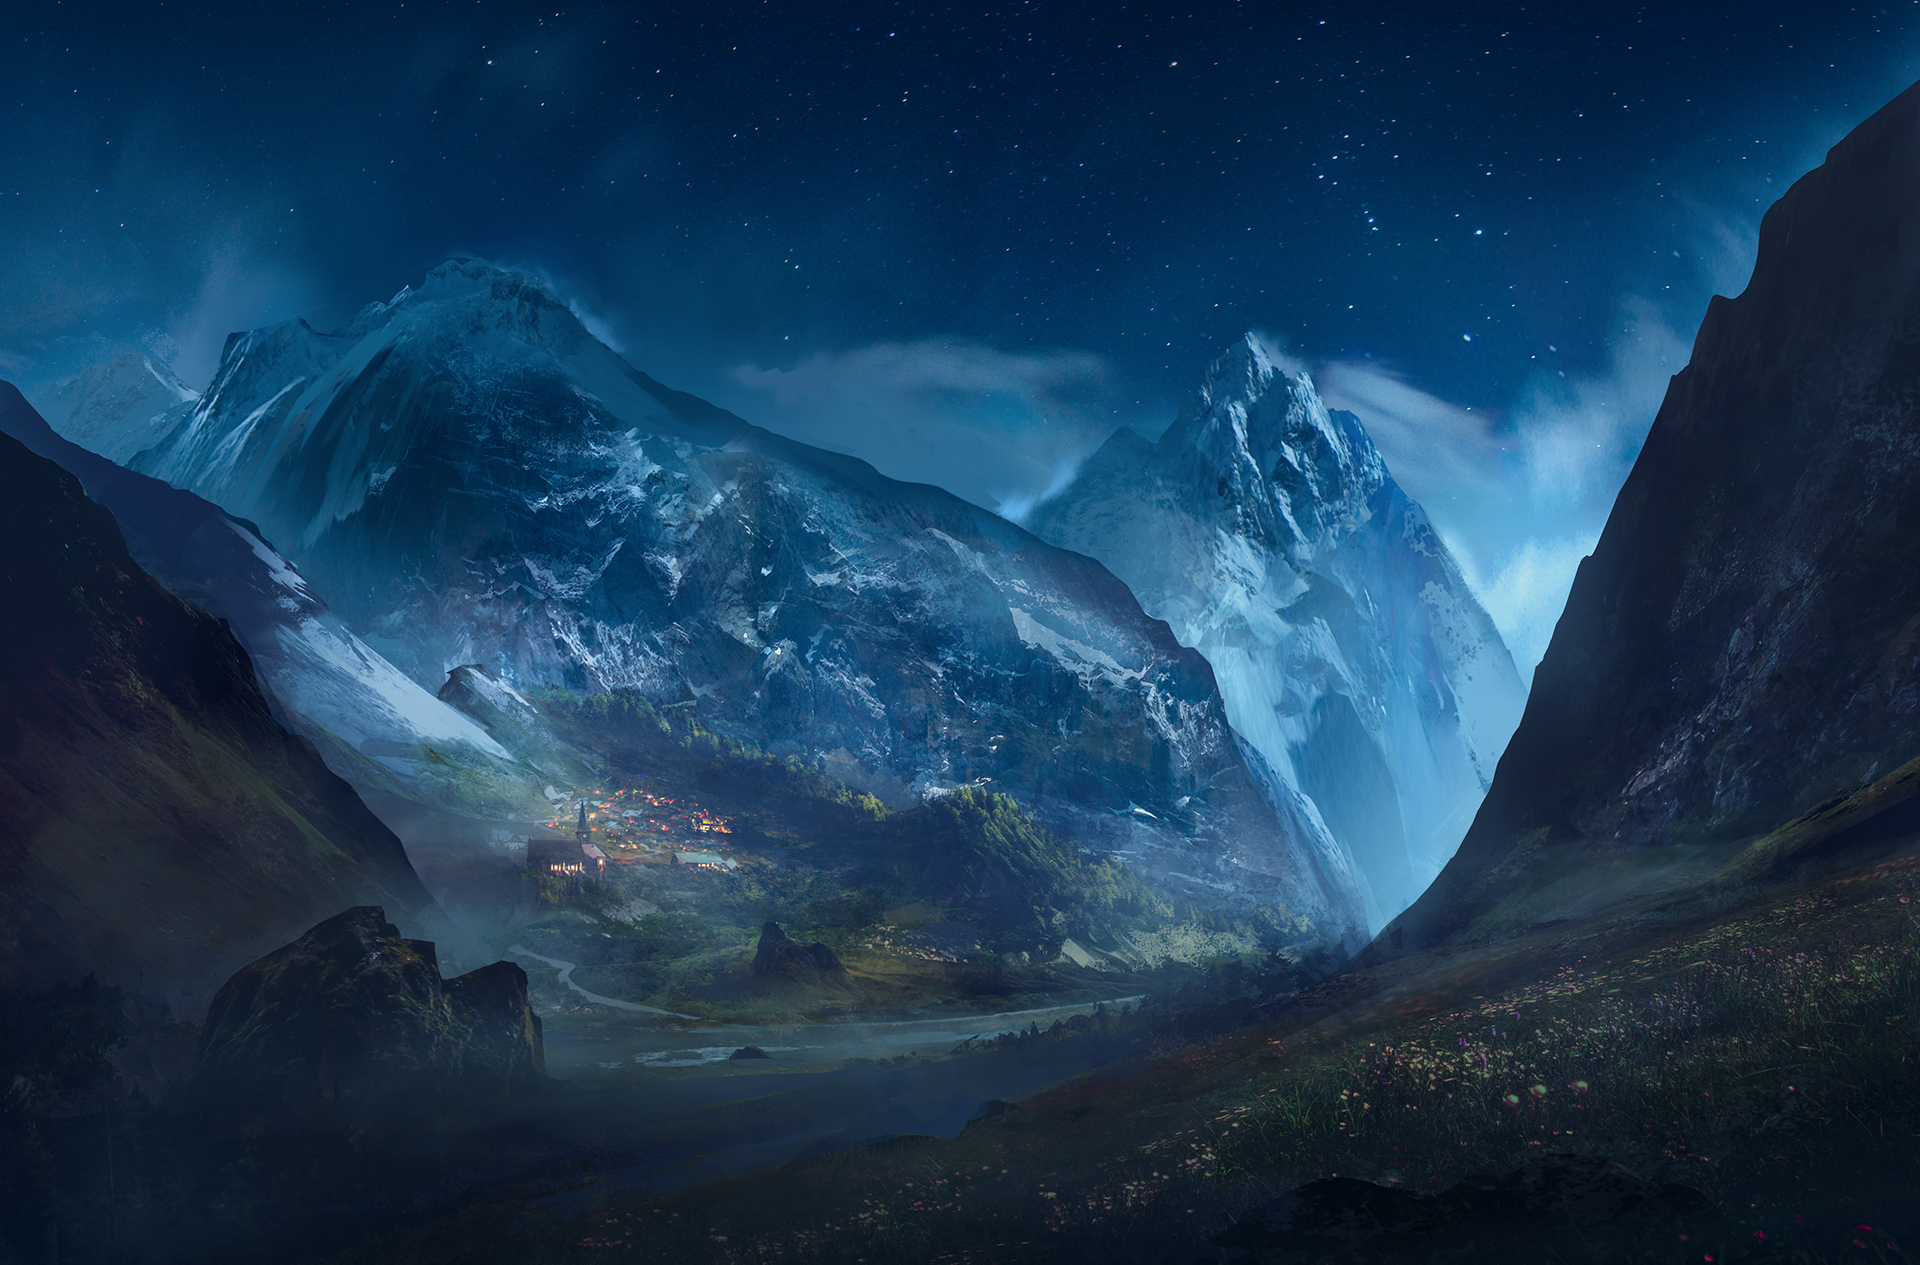 Artistic Landscape Mountains Hd Nature 4k Wallpapers Images Backgrounds Photos And Pictures